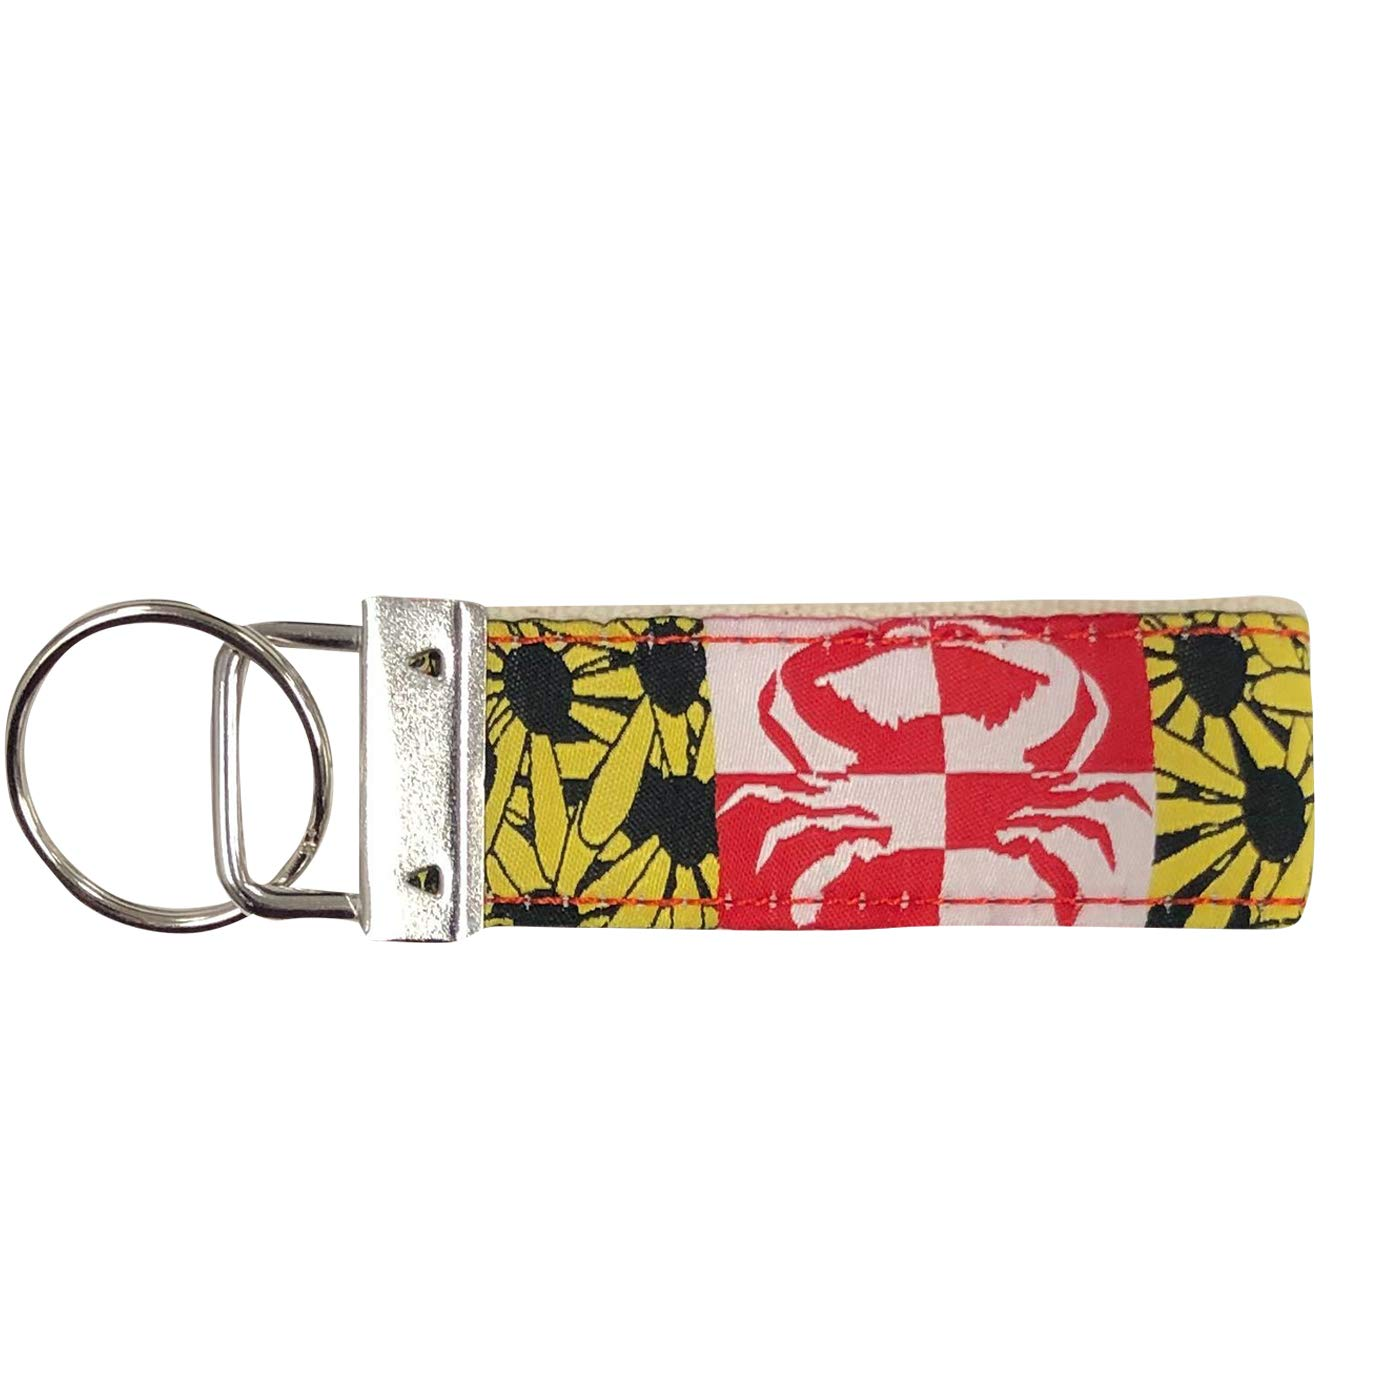 Route One Apparel | Crabby Susan Maryland Key Chain